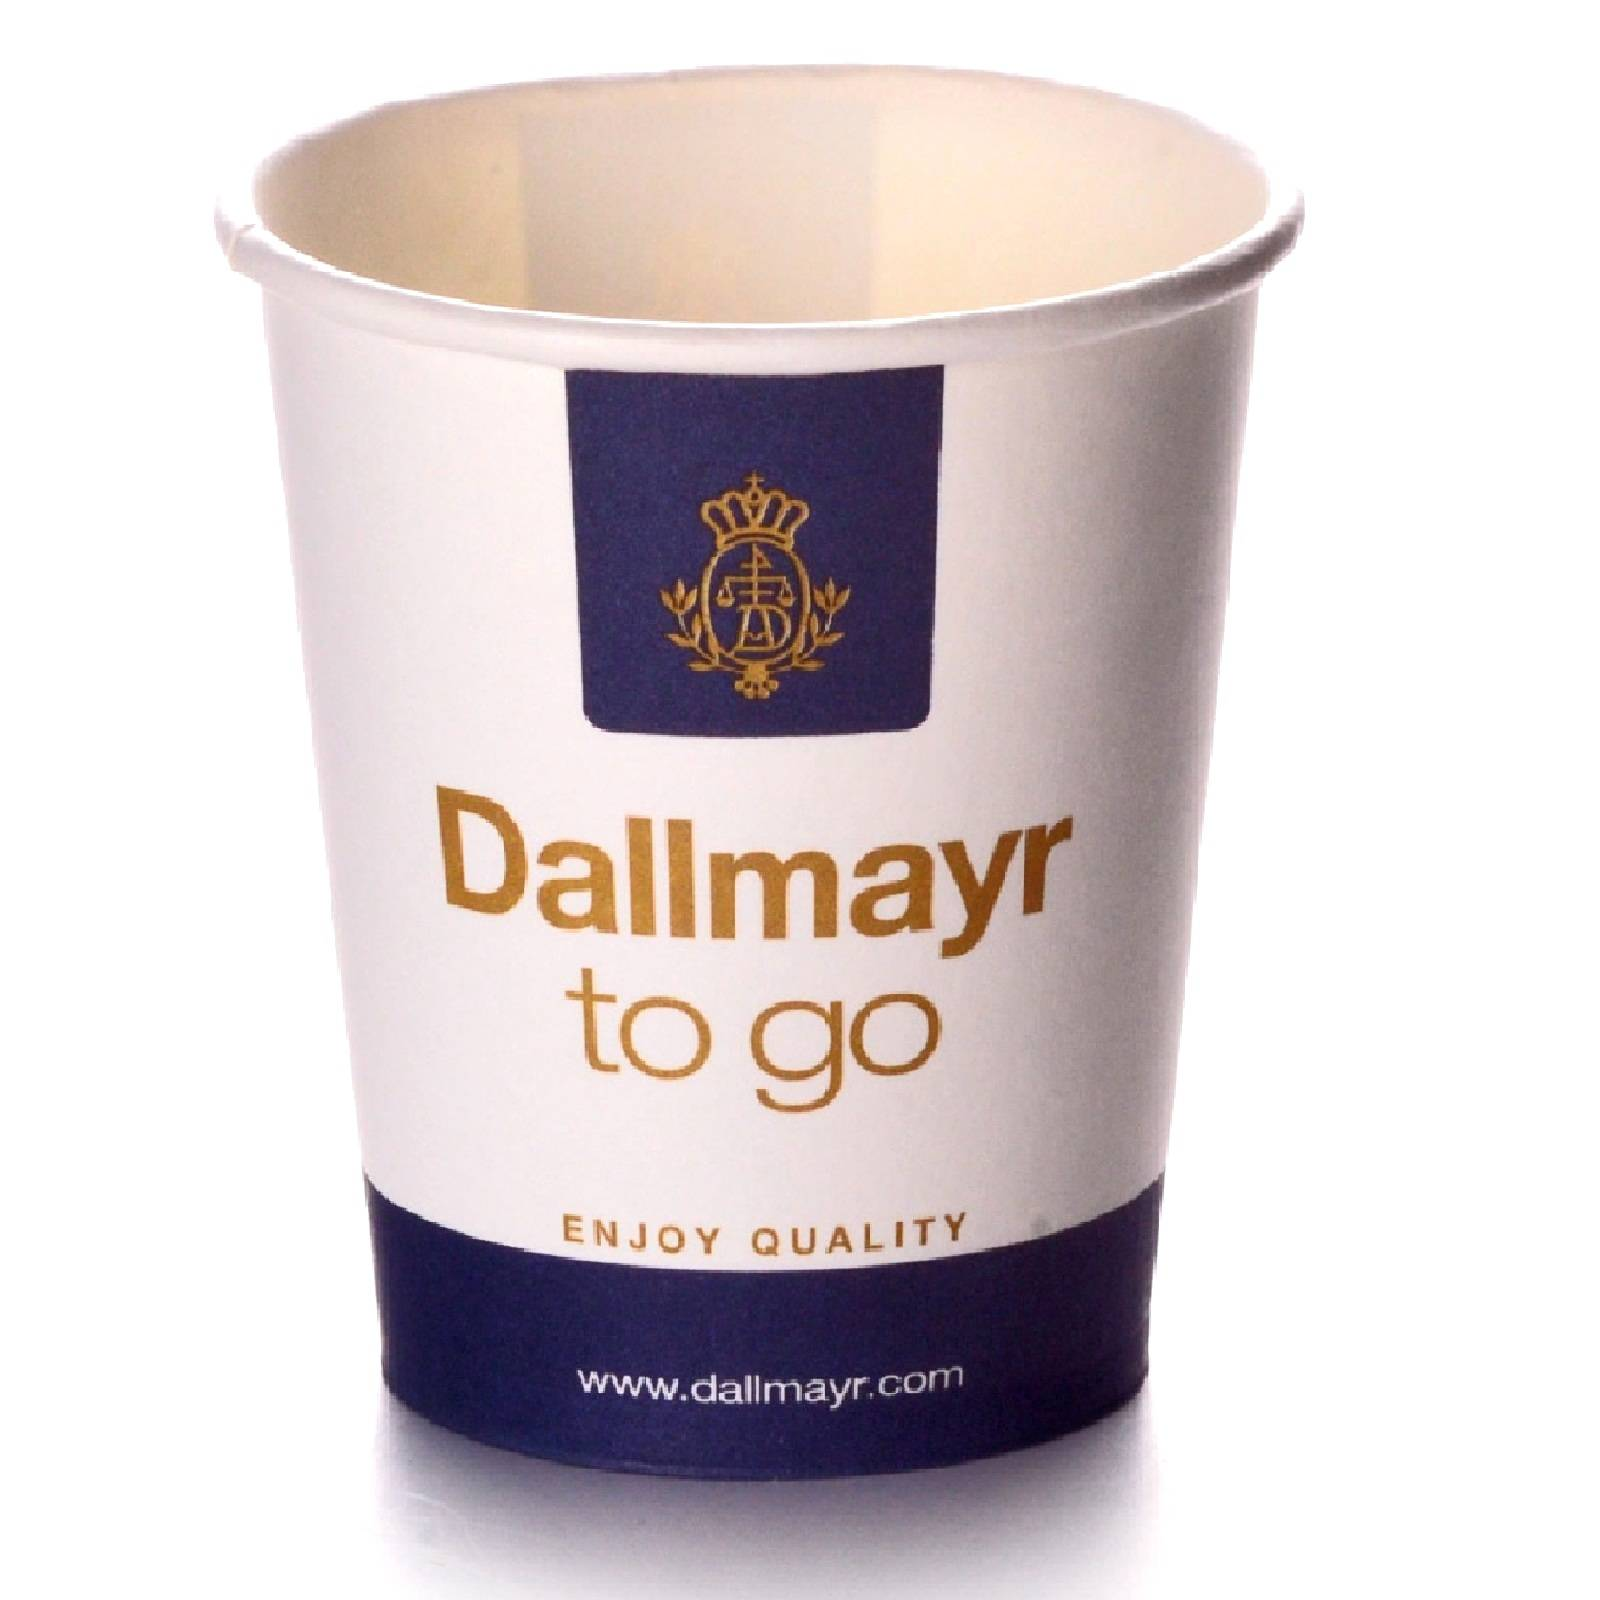 Dallmayr Coffee to go Becher 0,3l Pappbecher 100 Stk.